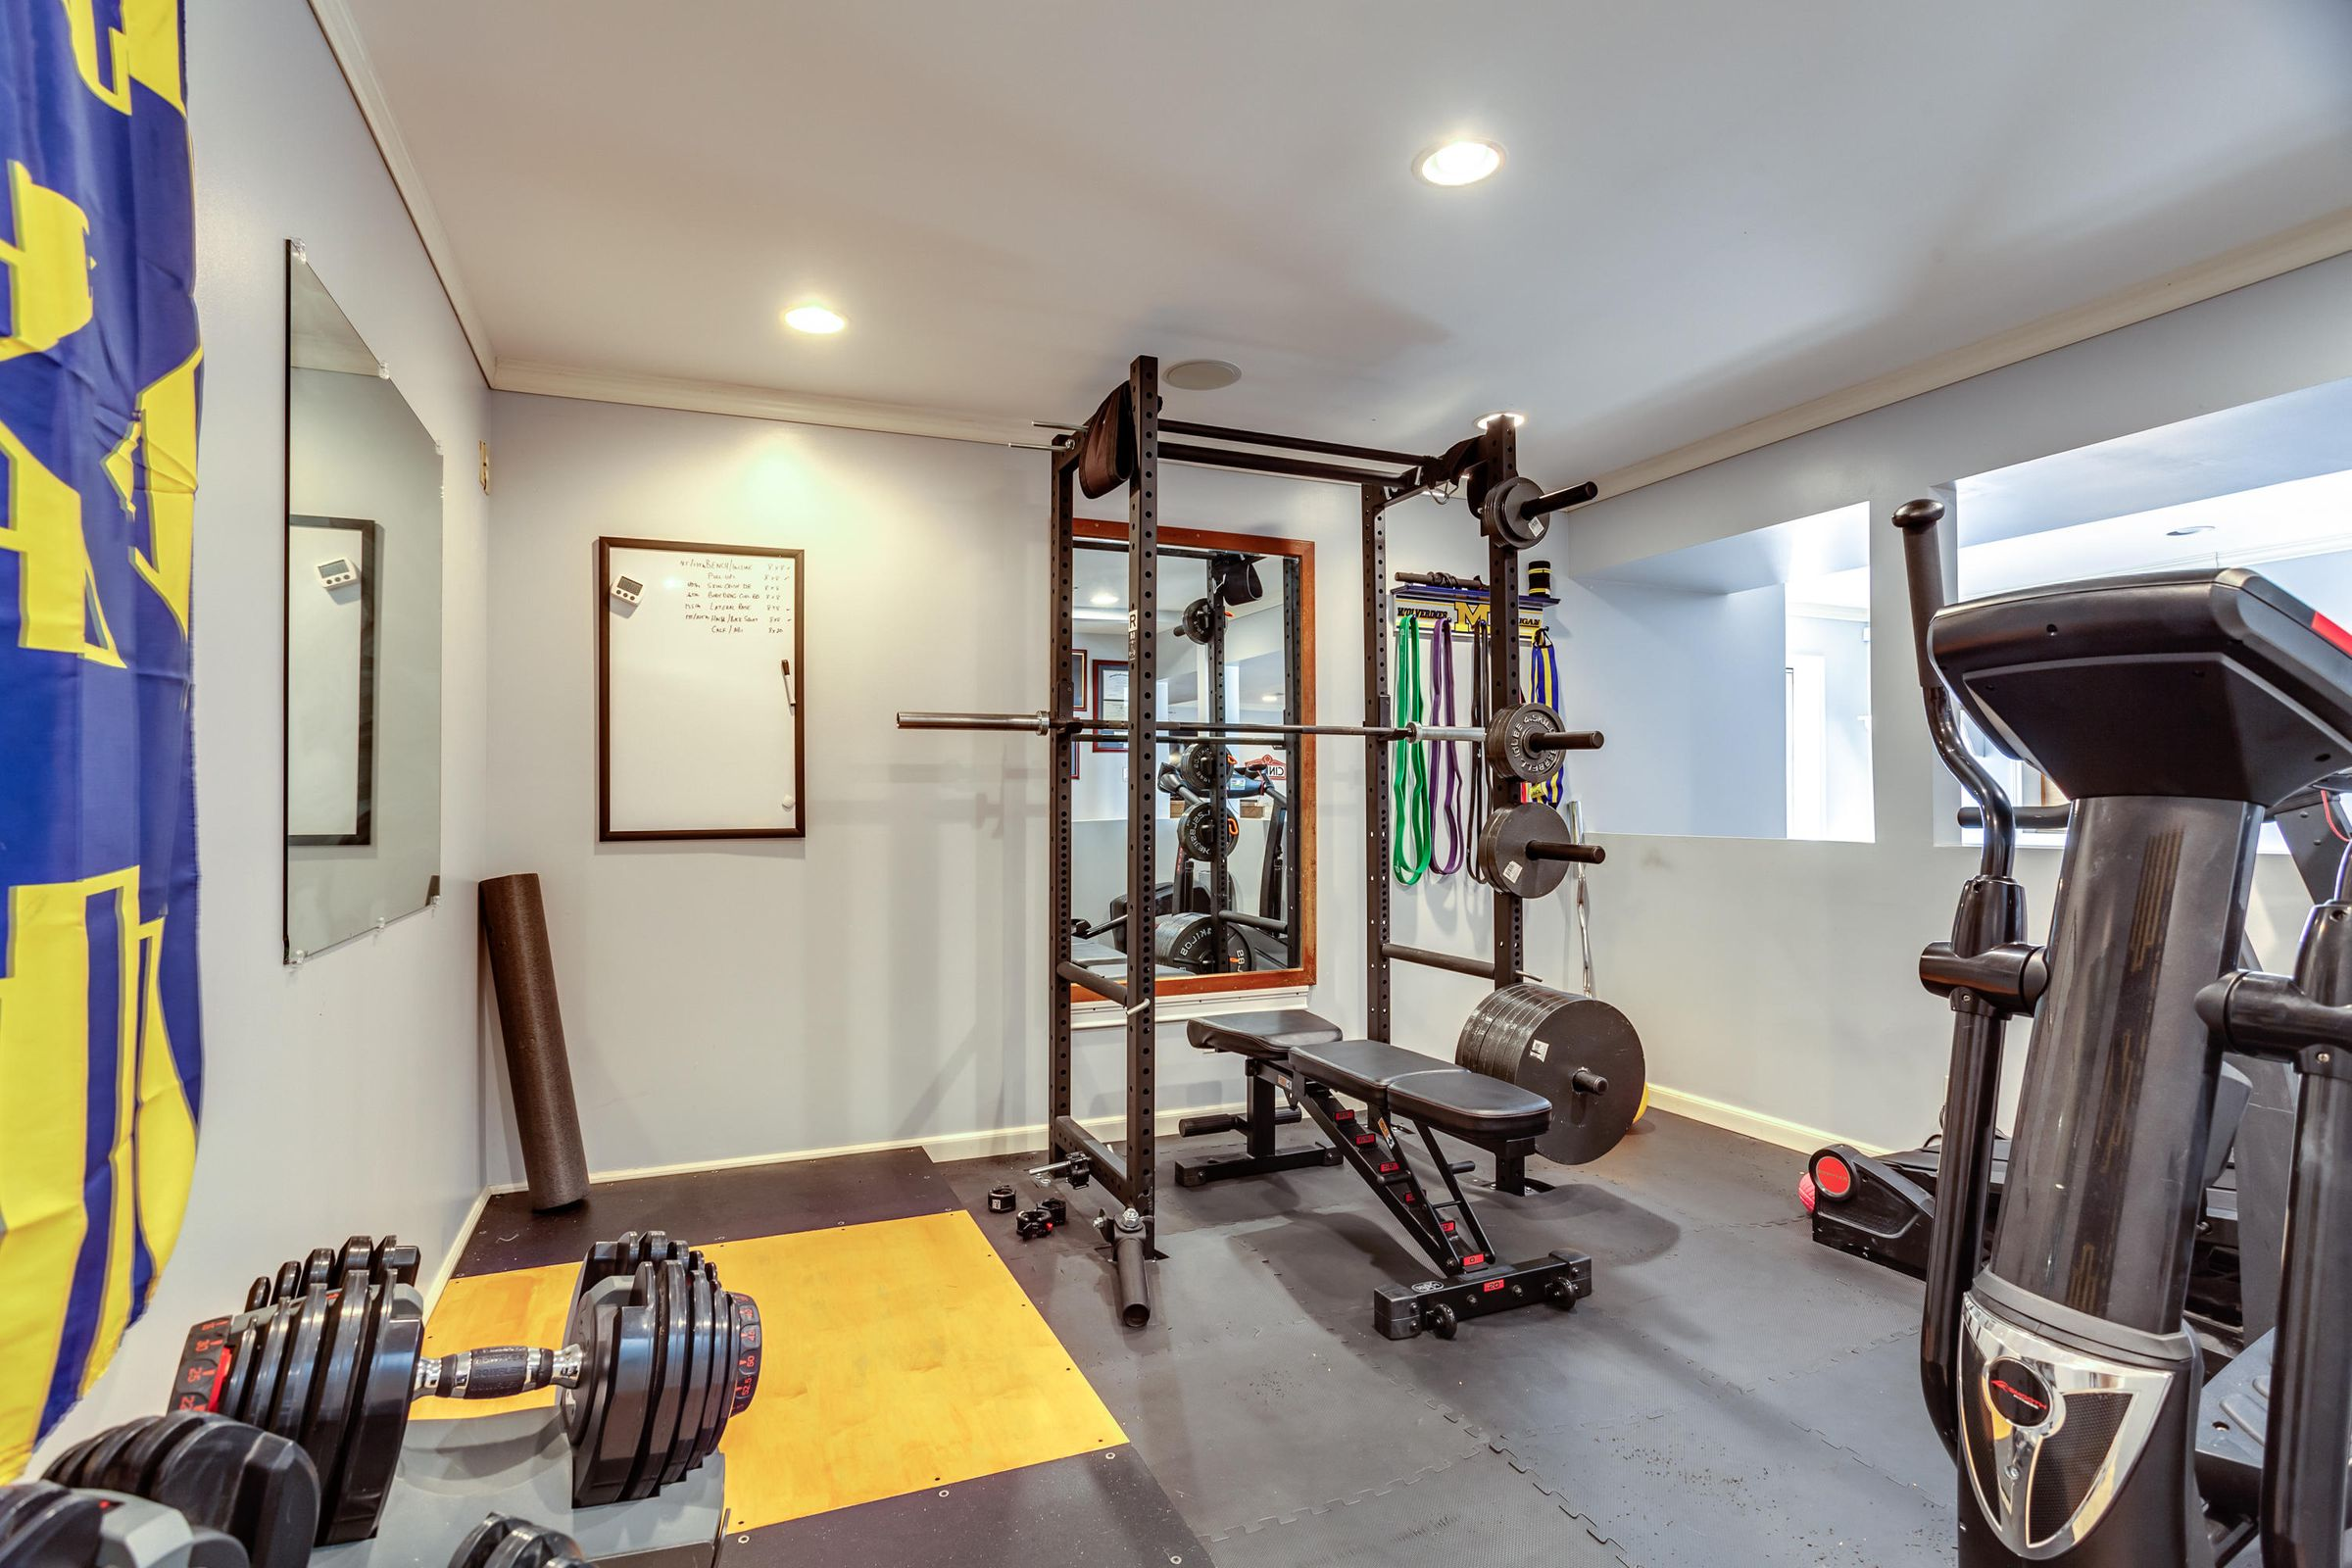 Workout Room in Basement